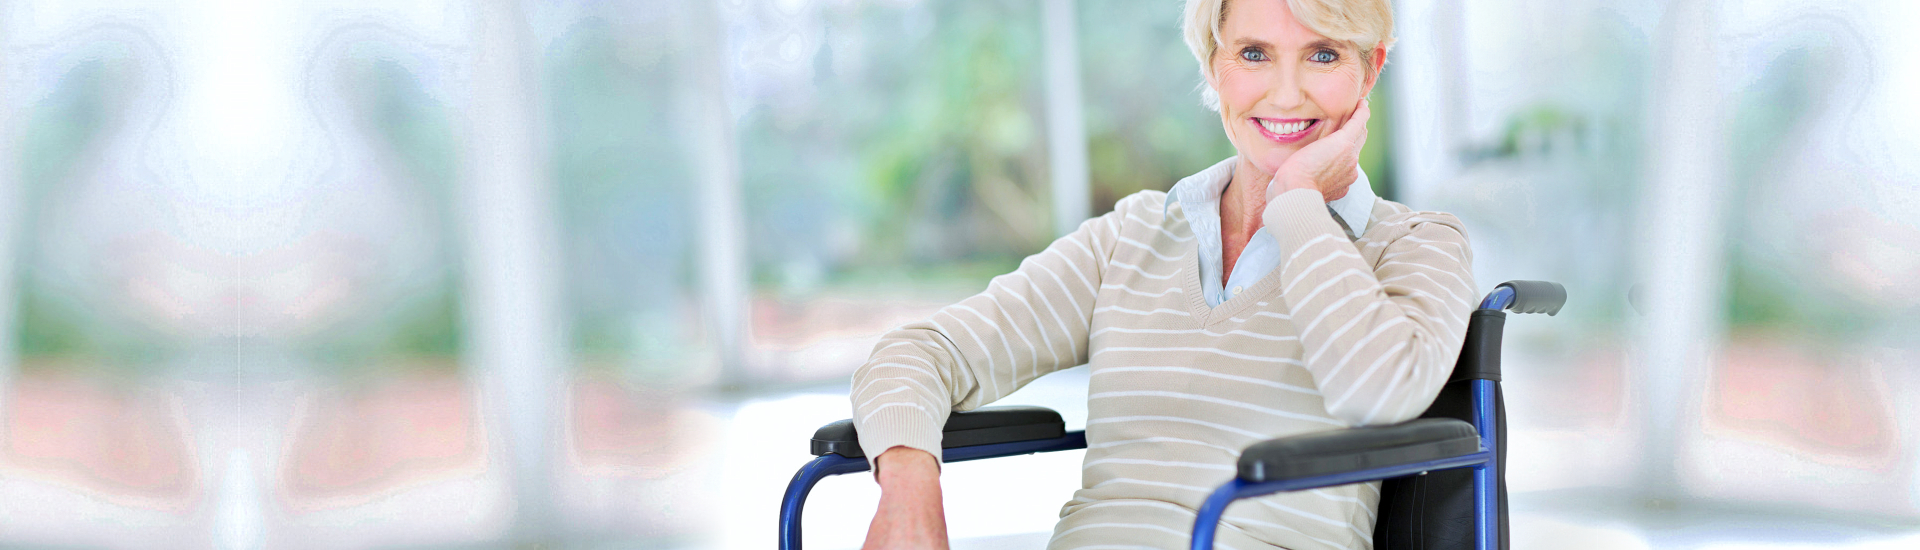 elderly woman in a wheelchair smiling